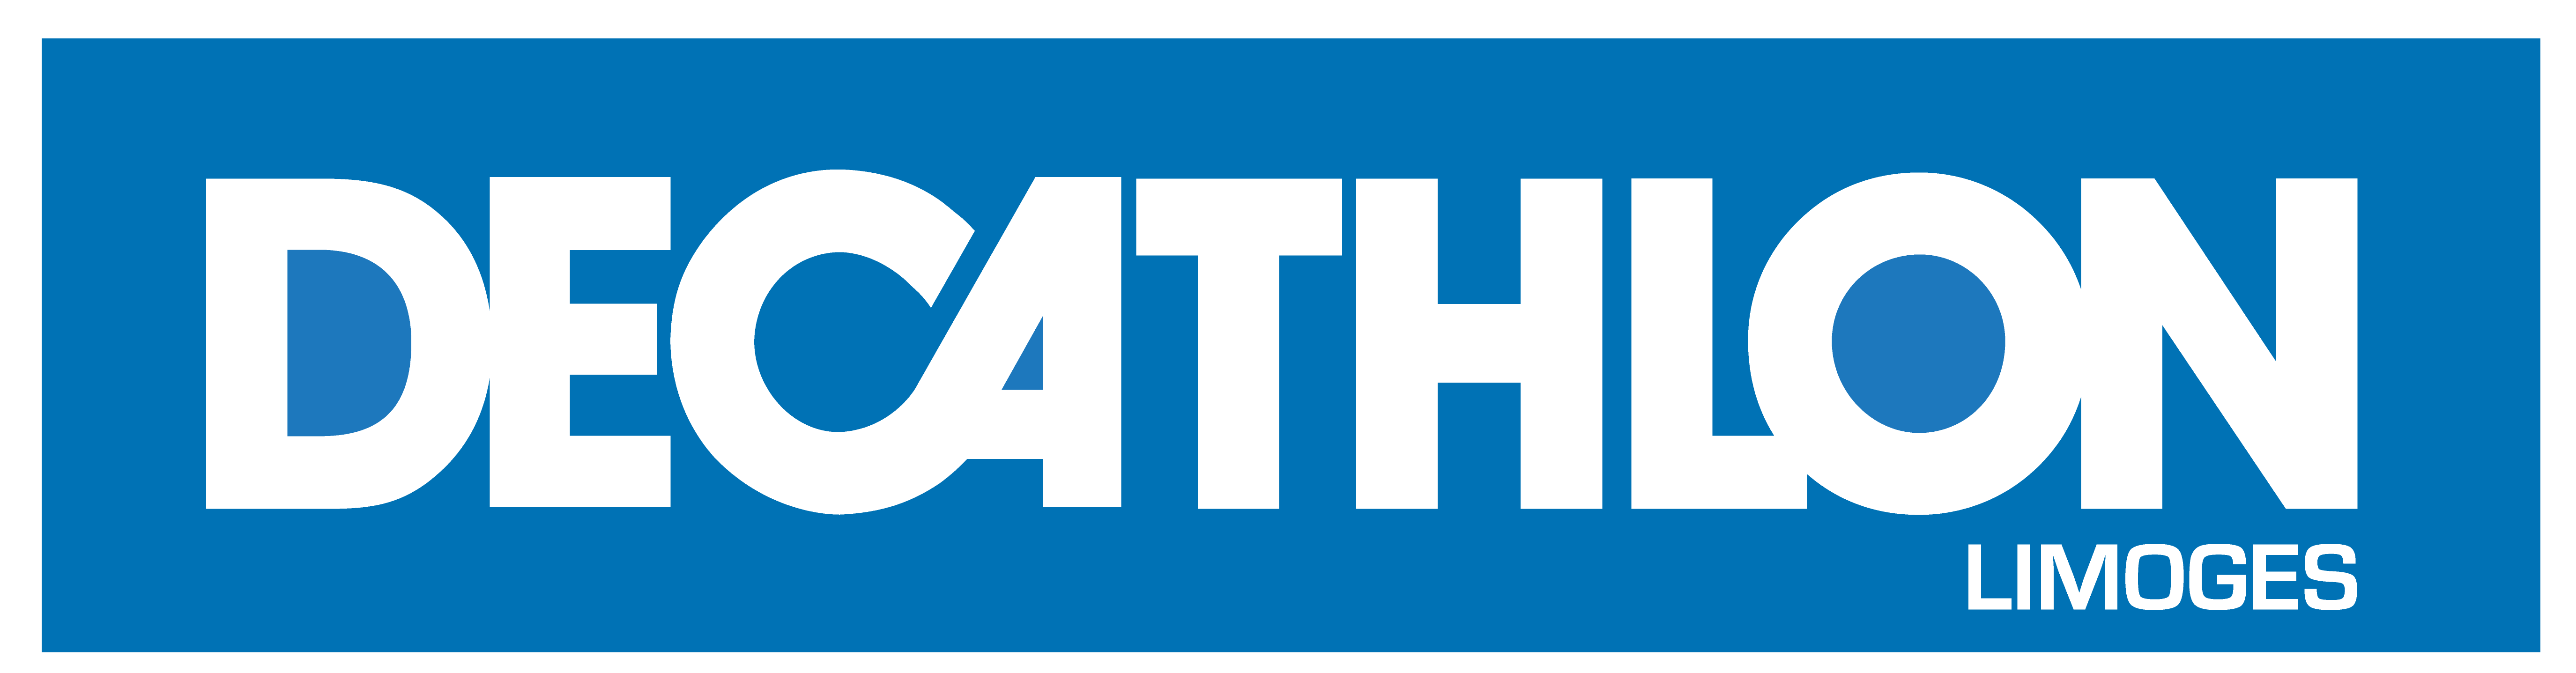 Jobs at decathlon-limoges | Sportyjob